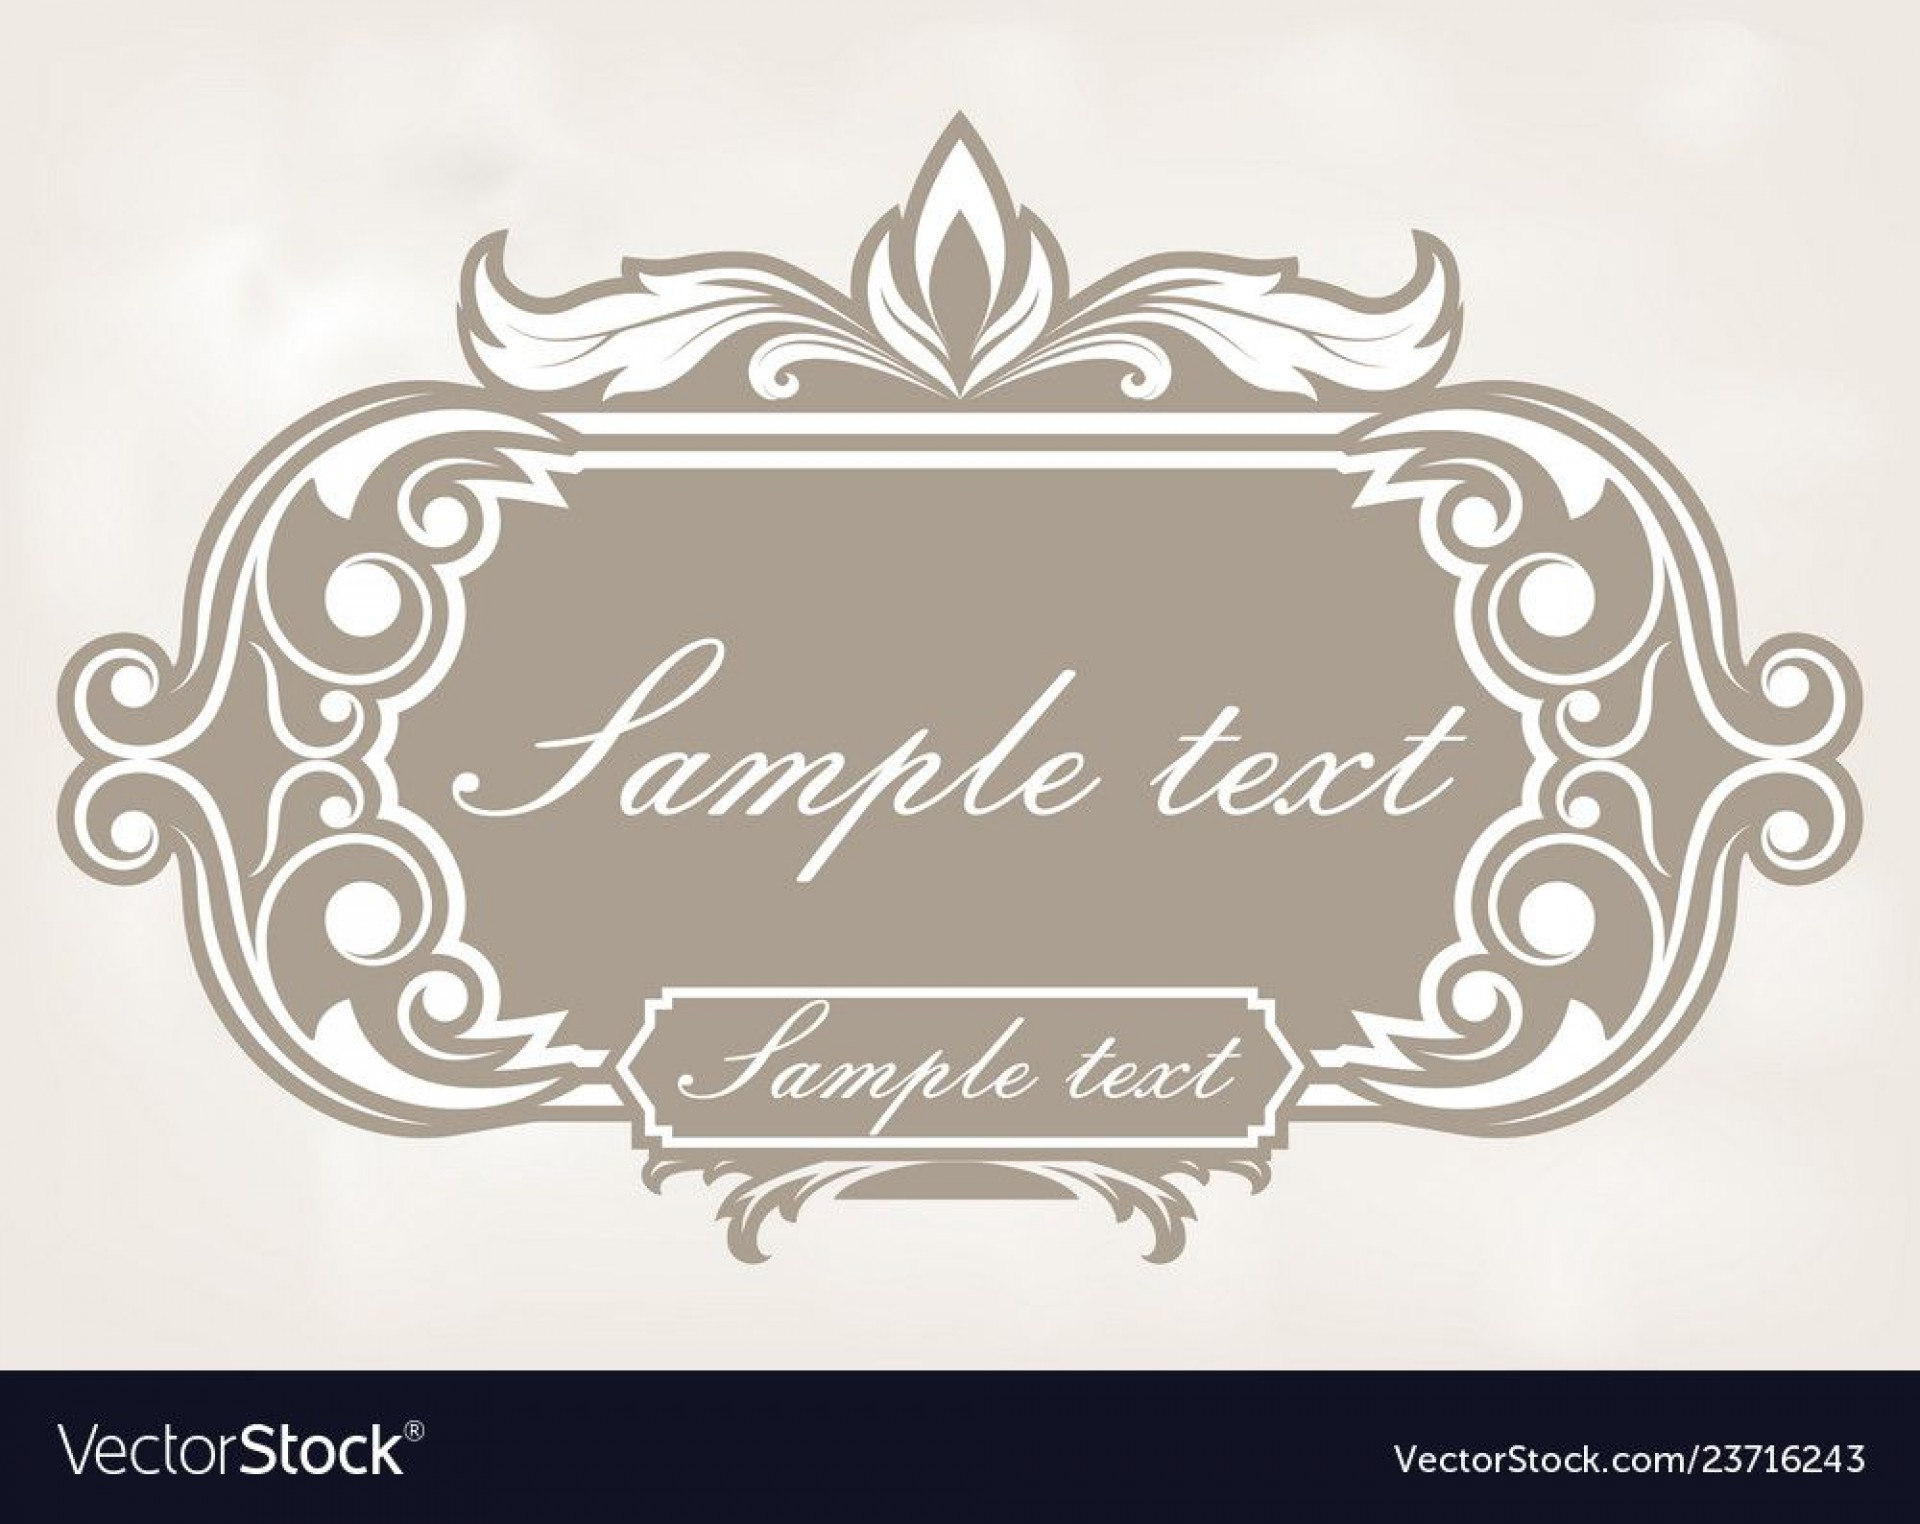 007 Surprising Free Addres Label Design Template Sample  Templates For Word Shipping1920